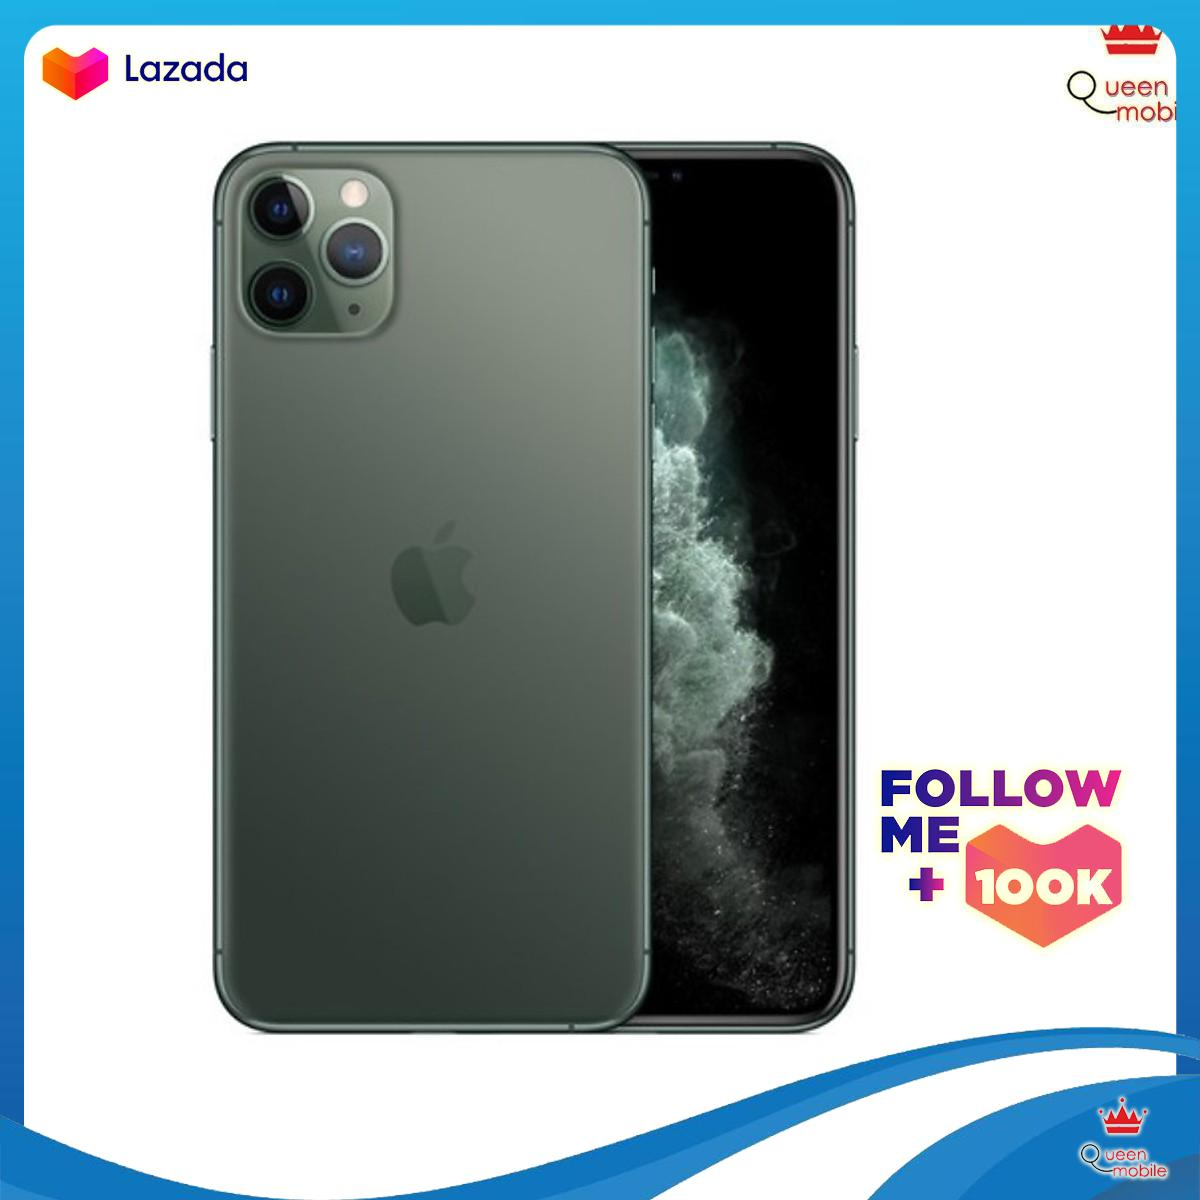 [HOT DEAL - QUEEN MOBILE] Điện Thoại iPhone 11 Pro...